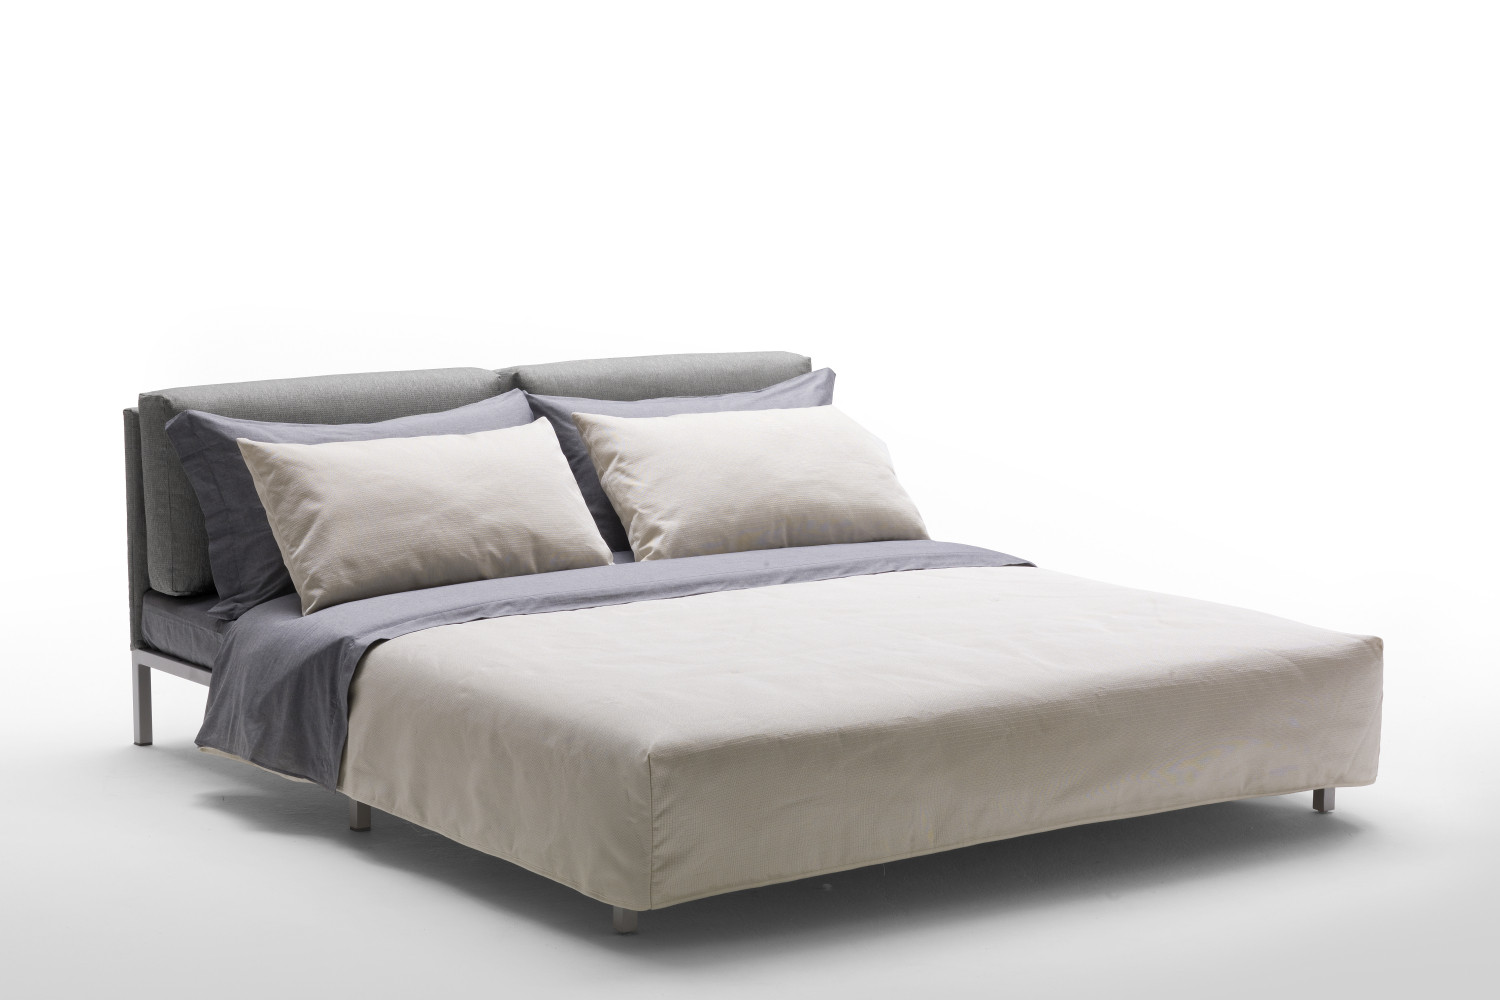 Willy Sofa Bed With Slide Out Base